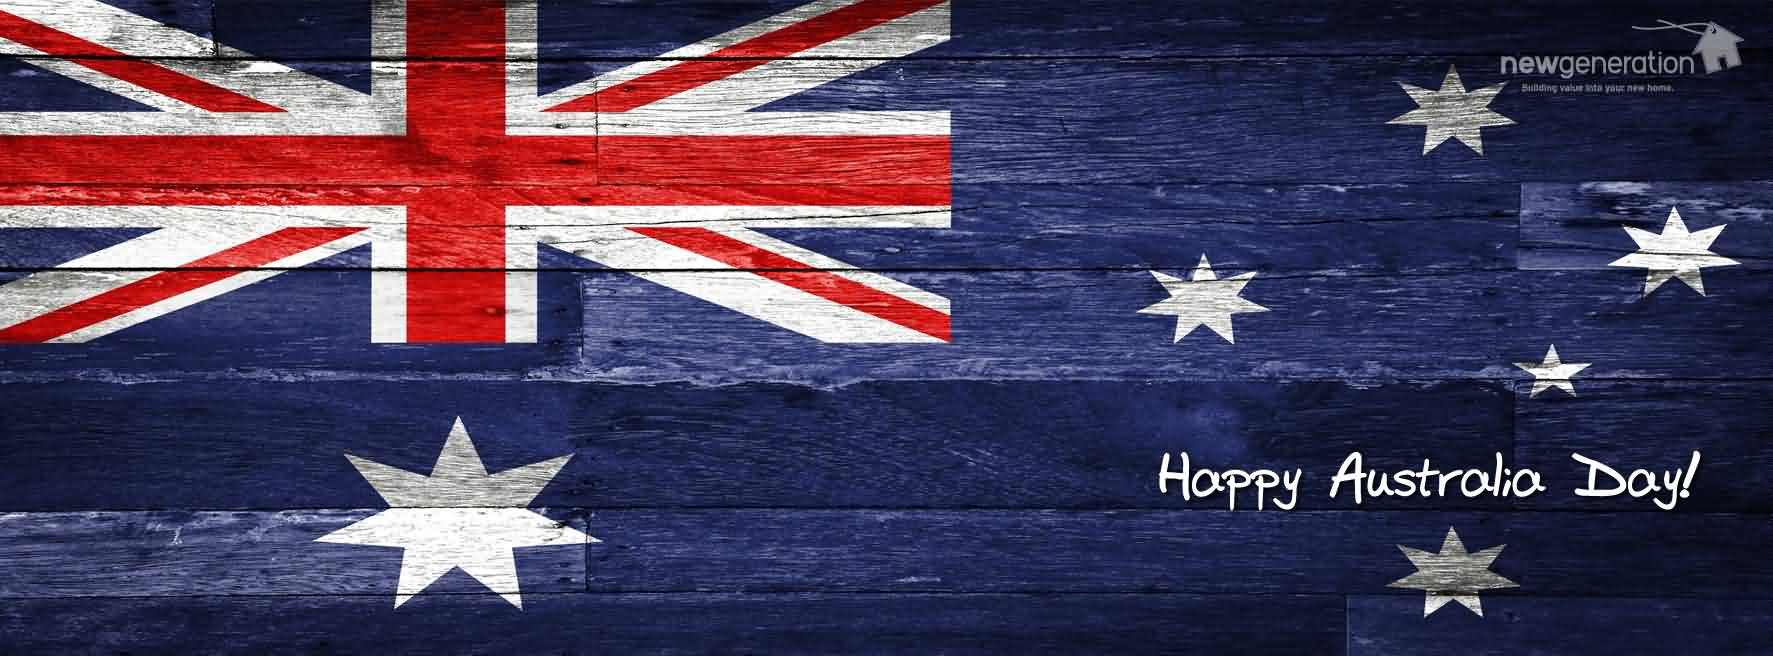 Happy Australia Day Wishes 21